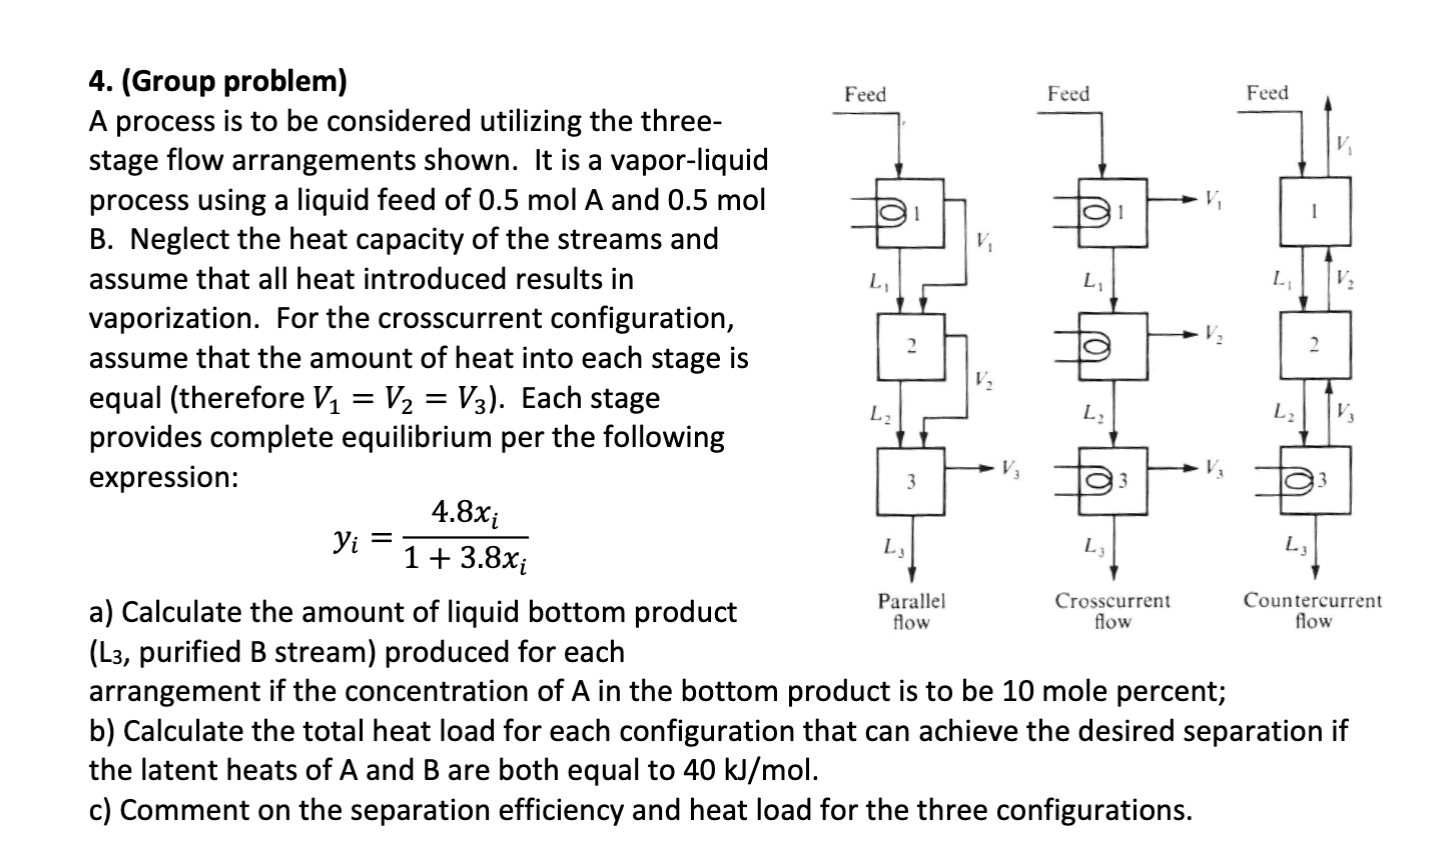 Feed Feed Feed 4. (Group problem) A process is to be considered utilizing the three- stage flow arrangements shown. It is a v